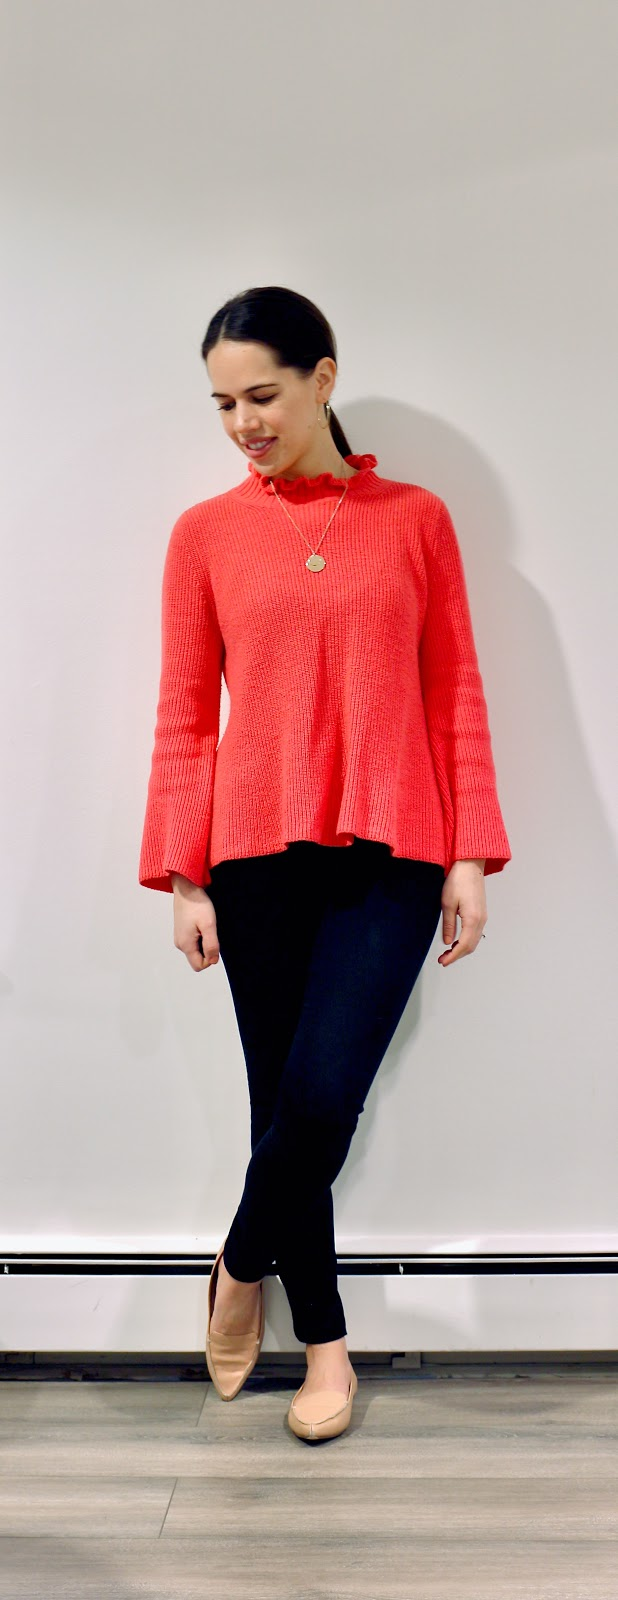 Jules in Flats - Hot Pink Ruffle Mock Neck Swing Sweater (Business Casual Winter Workwear on a Budget)